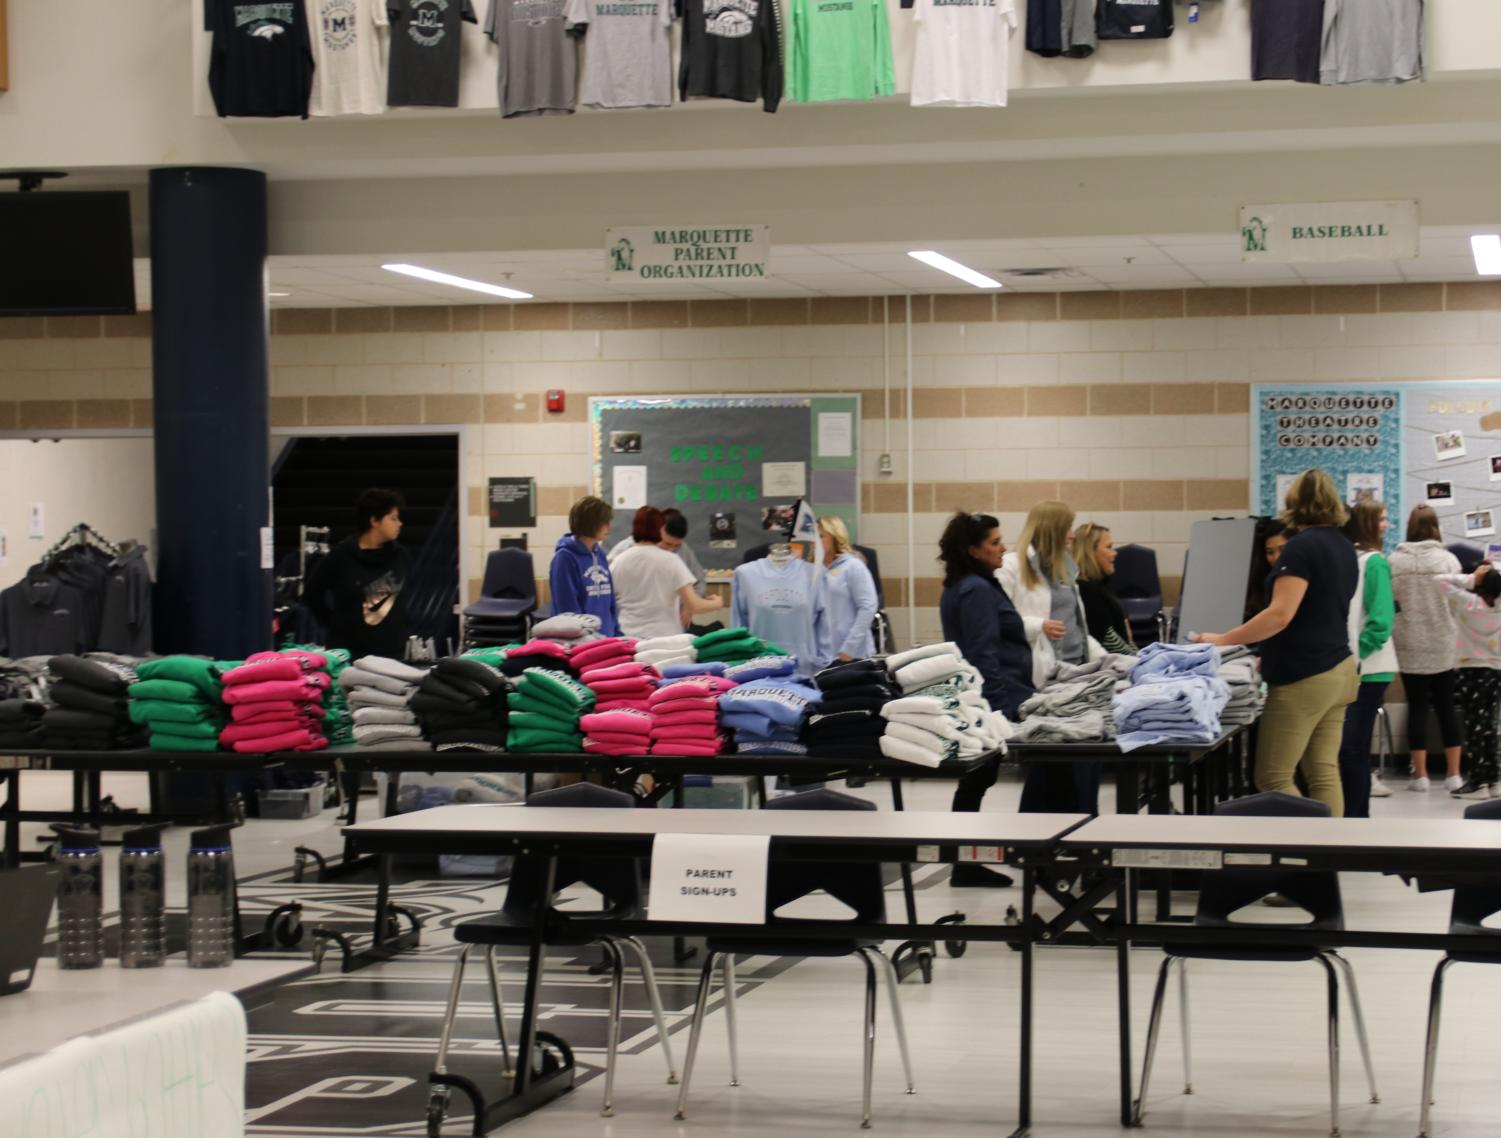 Volunteers+from+the+MPO+work+at+a+table+set+up+in+the+Commons+where+they+sell+MHS+spiritwear+for+the+incoming+freshmen.+%E2%80%9CI+work+in+the+school+store+on+a+twice-a+month+basis%2C+and+I+like+working+with+the+merchandise%2C+so+I+volunteered%2C%E2%80%9D+Janice+Schuth%2C+one+of+the+women+working+the+spiritwear+table%2C+said.